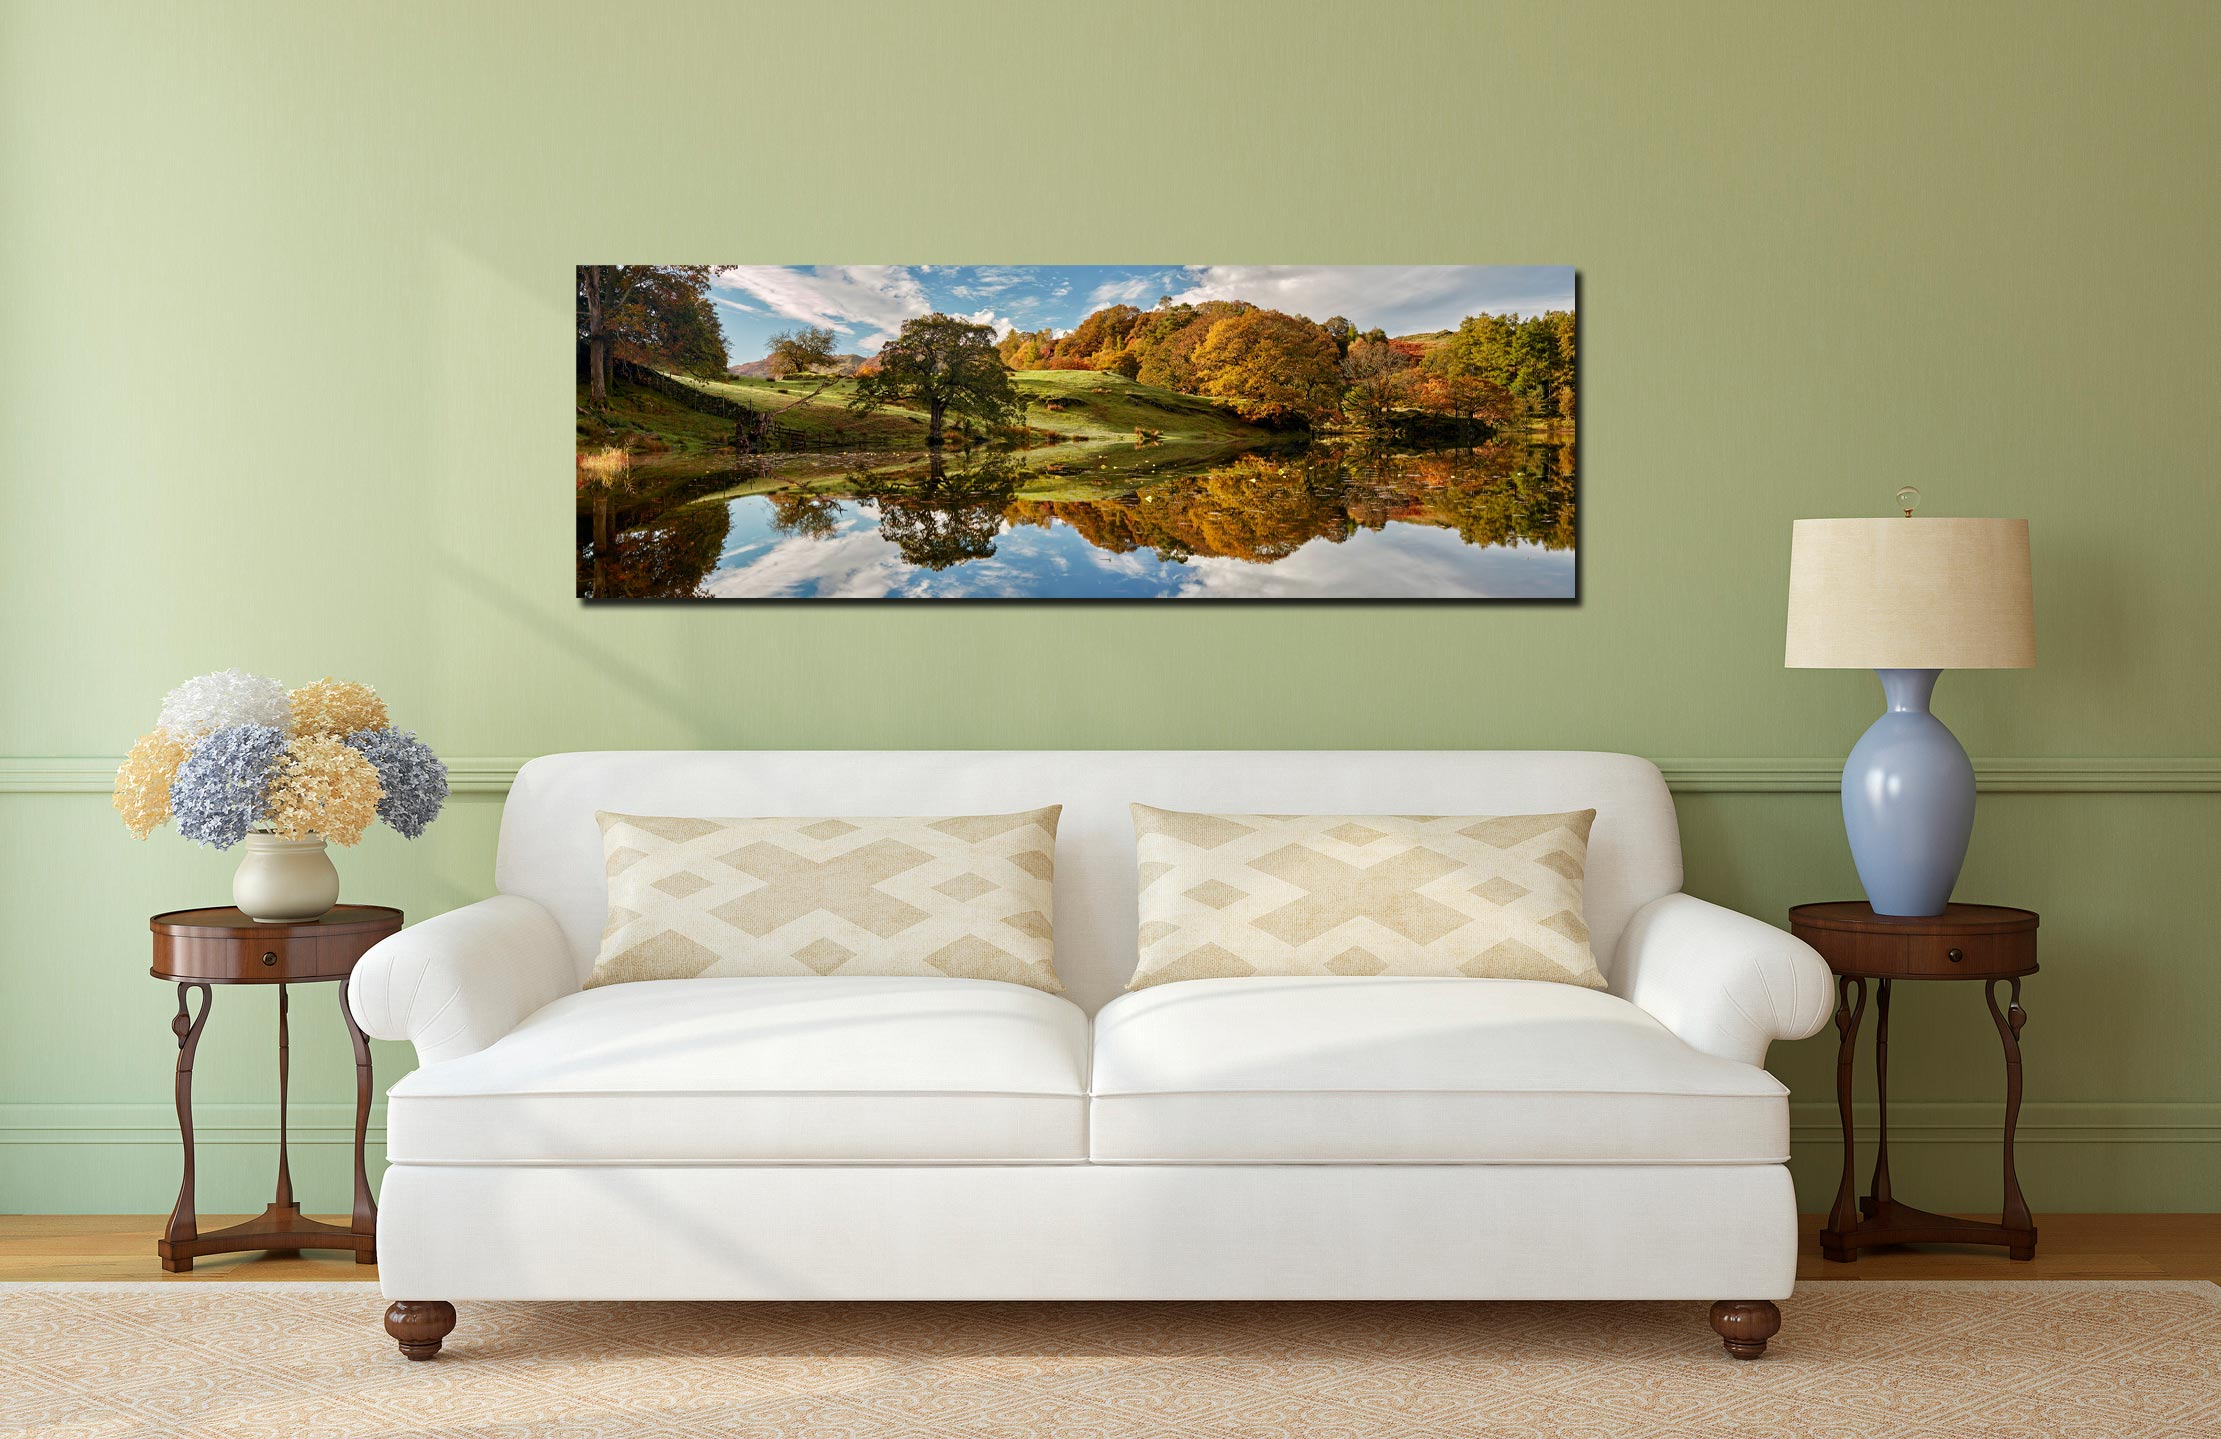 A beautiful sunny autumn morning at Loughrigg Tarn in Langdale - Print Aluminium Backing With Acrylic Glazing on Wall